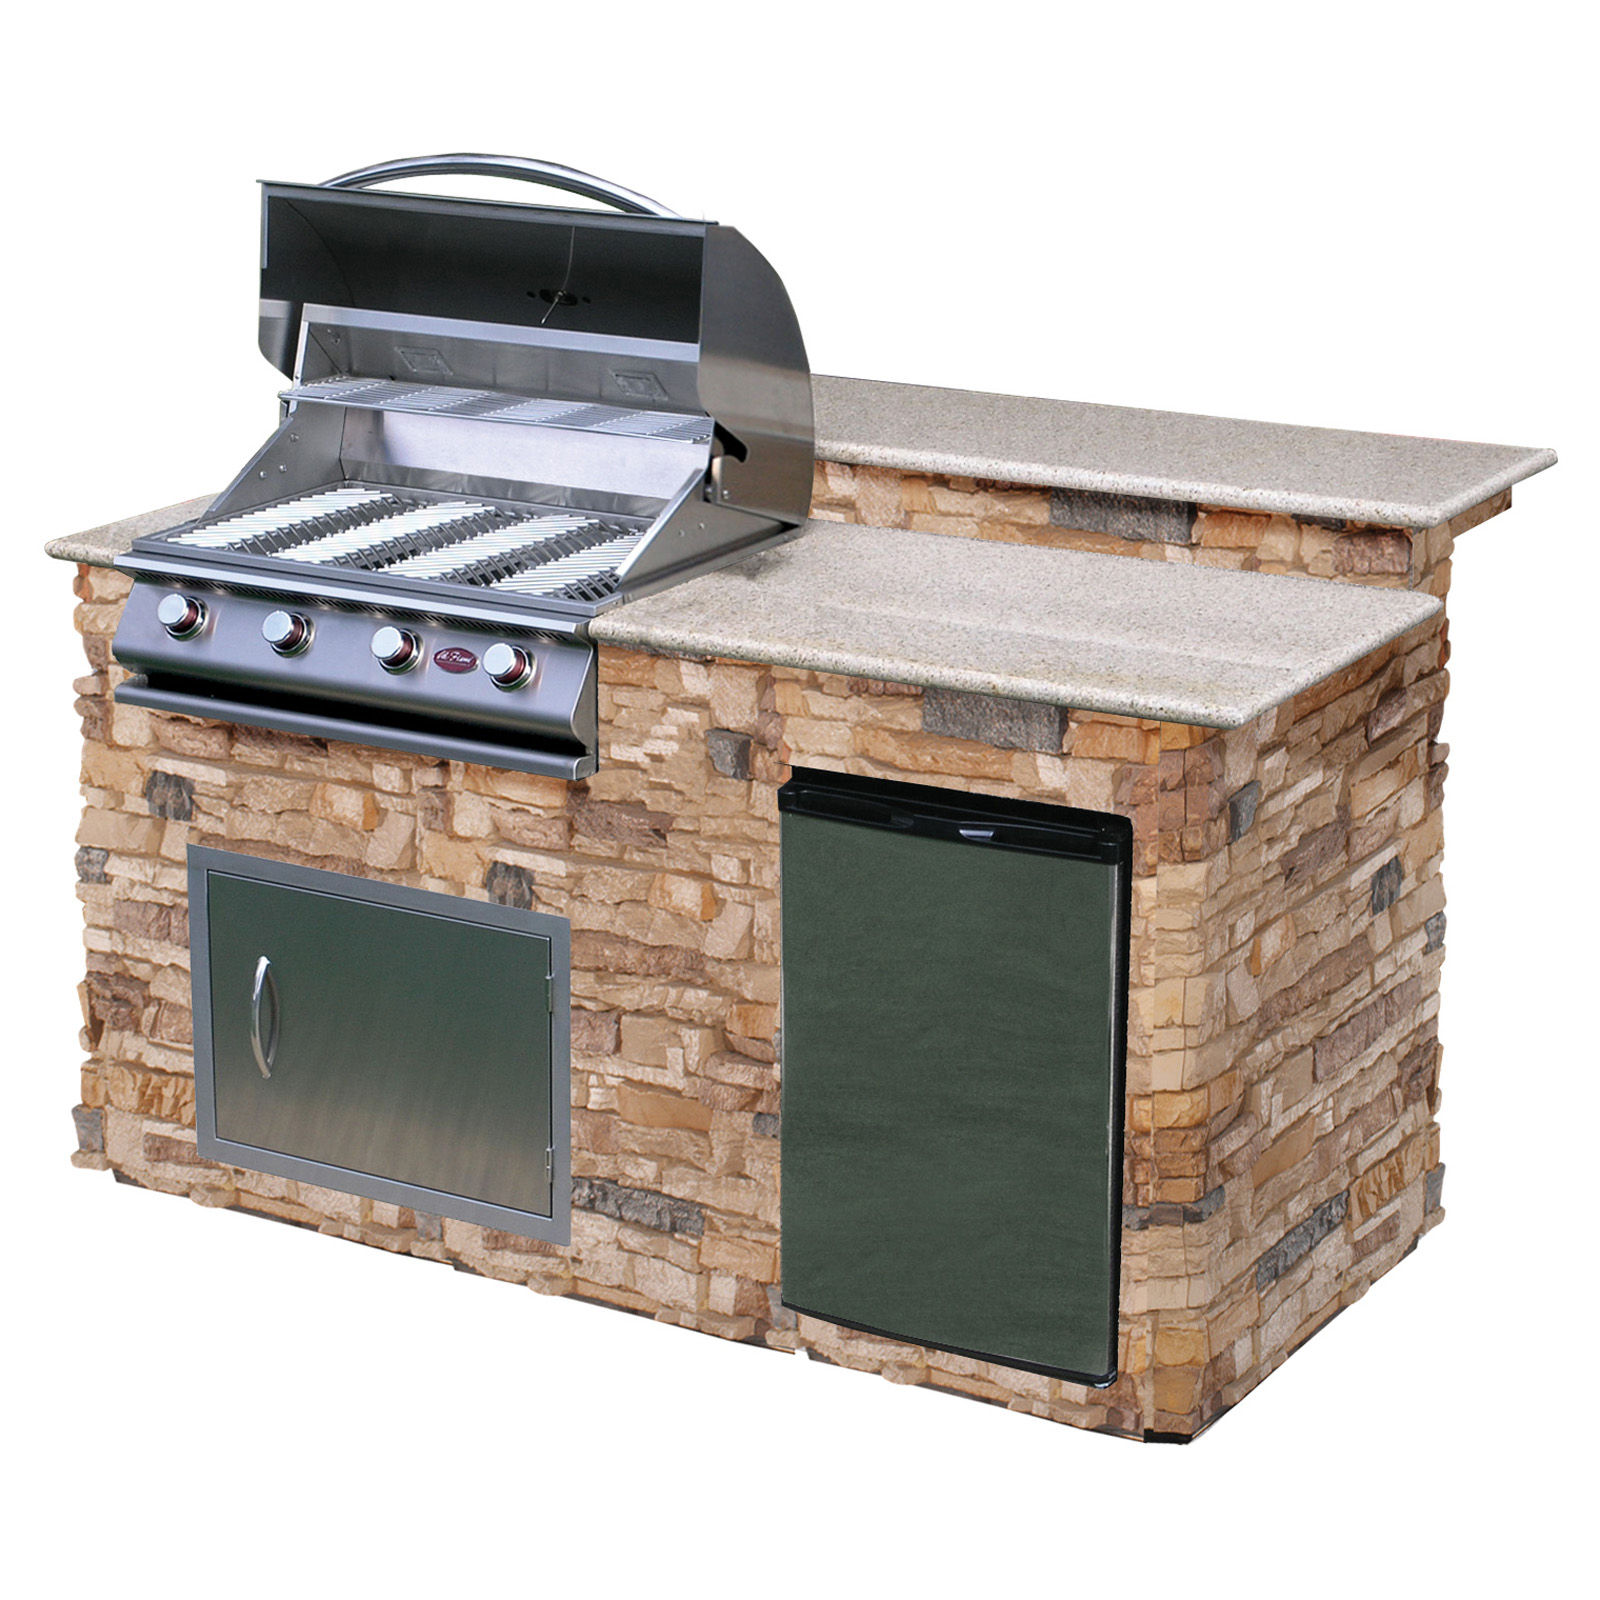 Cal flame 6 ft bbq island with granite top gas grill autumn pro fit stone at hayneedle - Home depot bbq propane ...